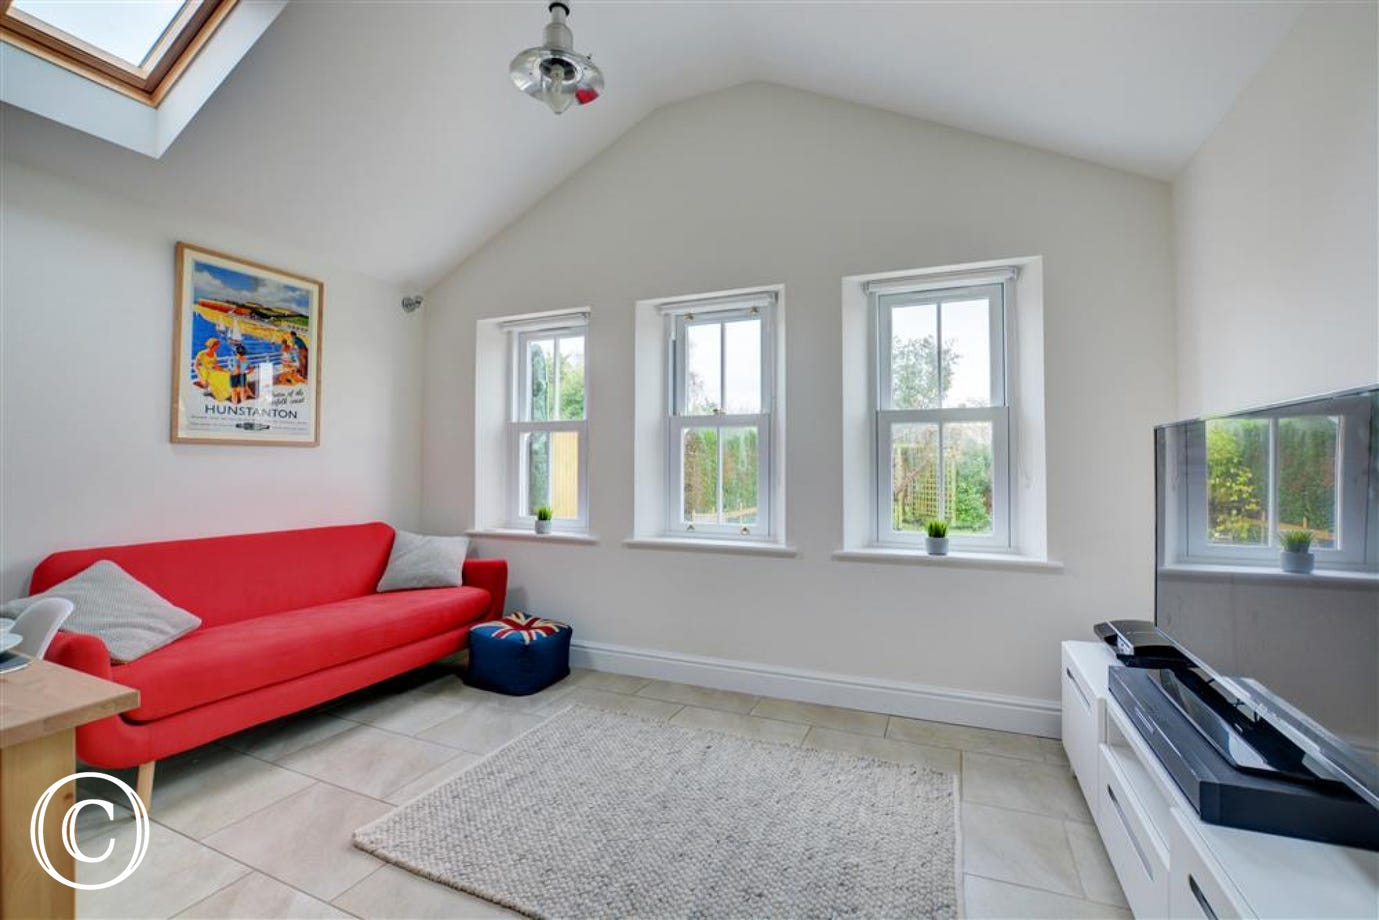 The sitting area is very light and airy with plenty of comfortable seating making it perfect for families